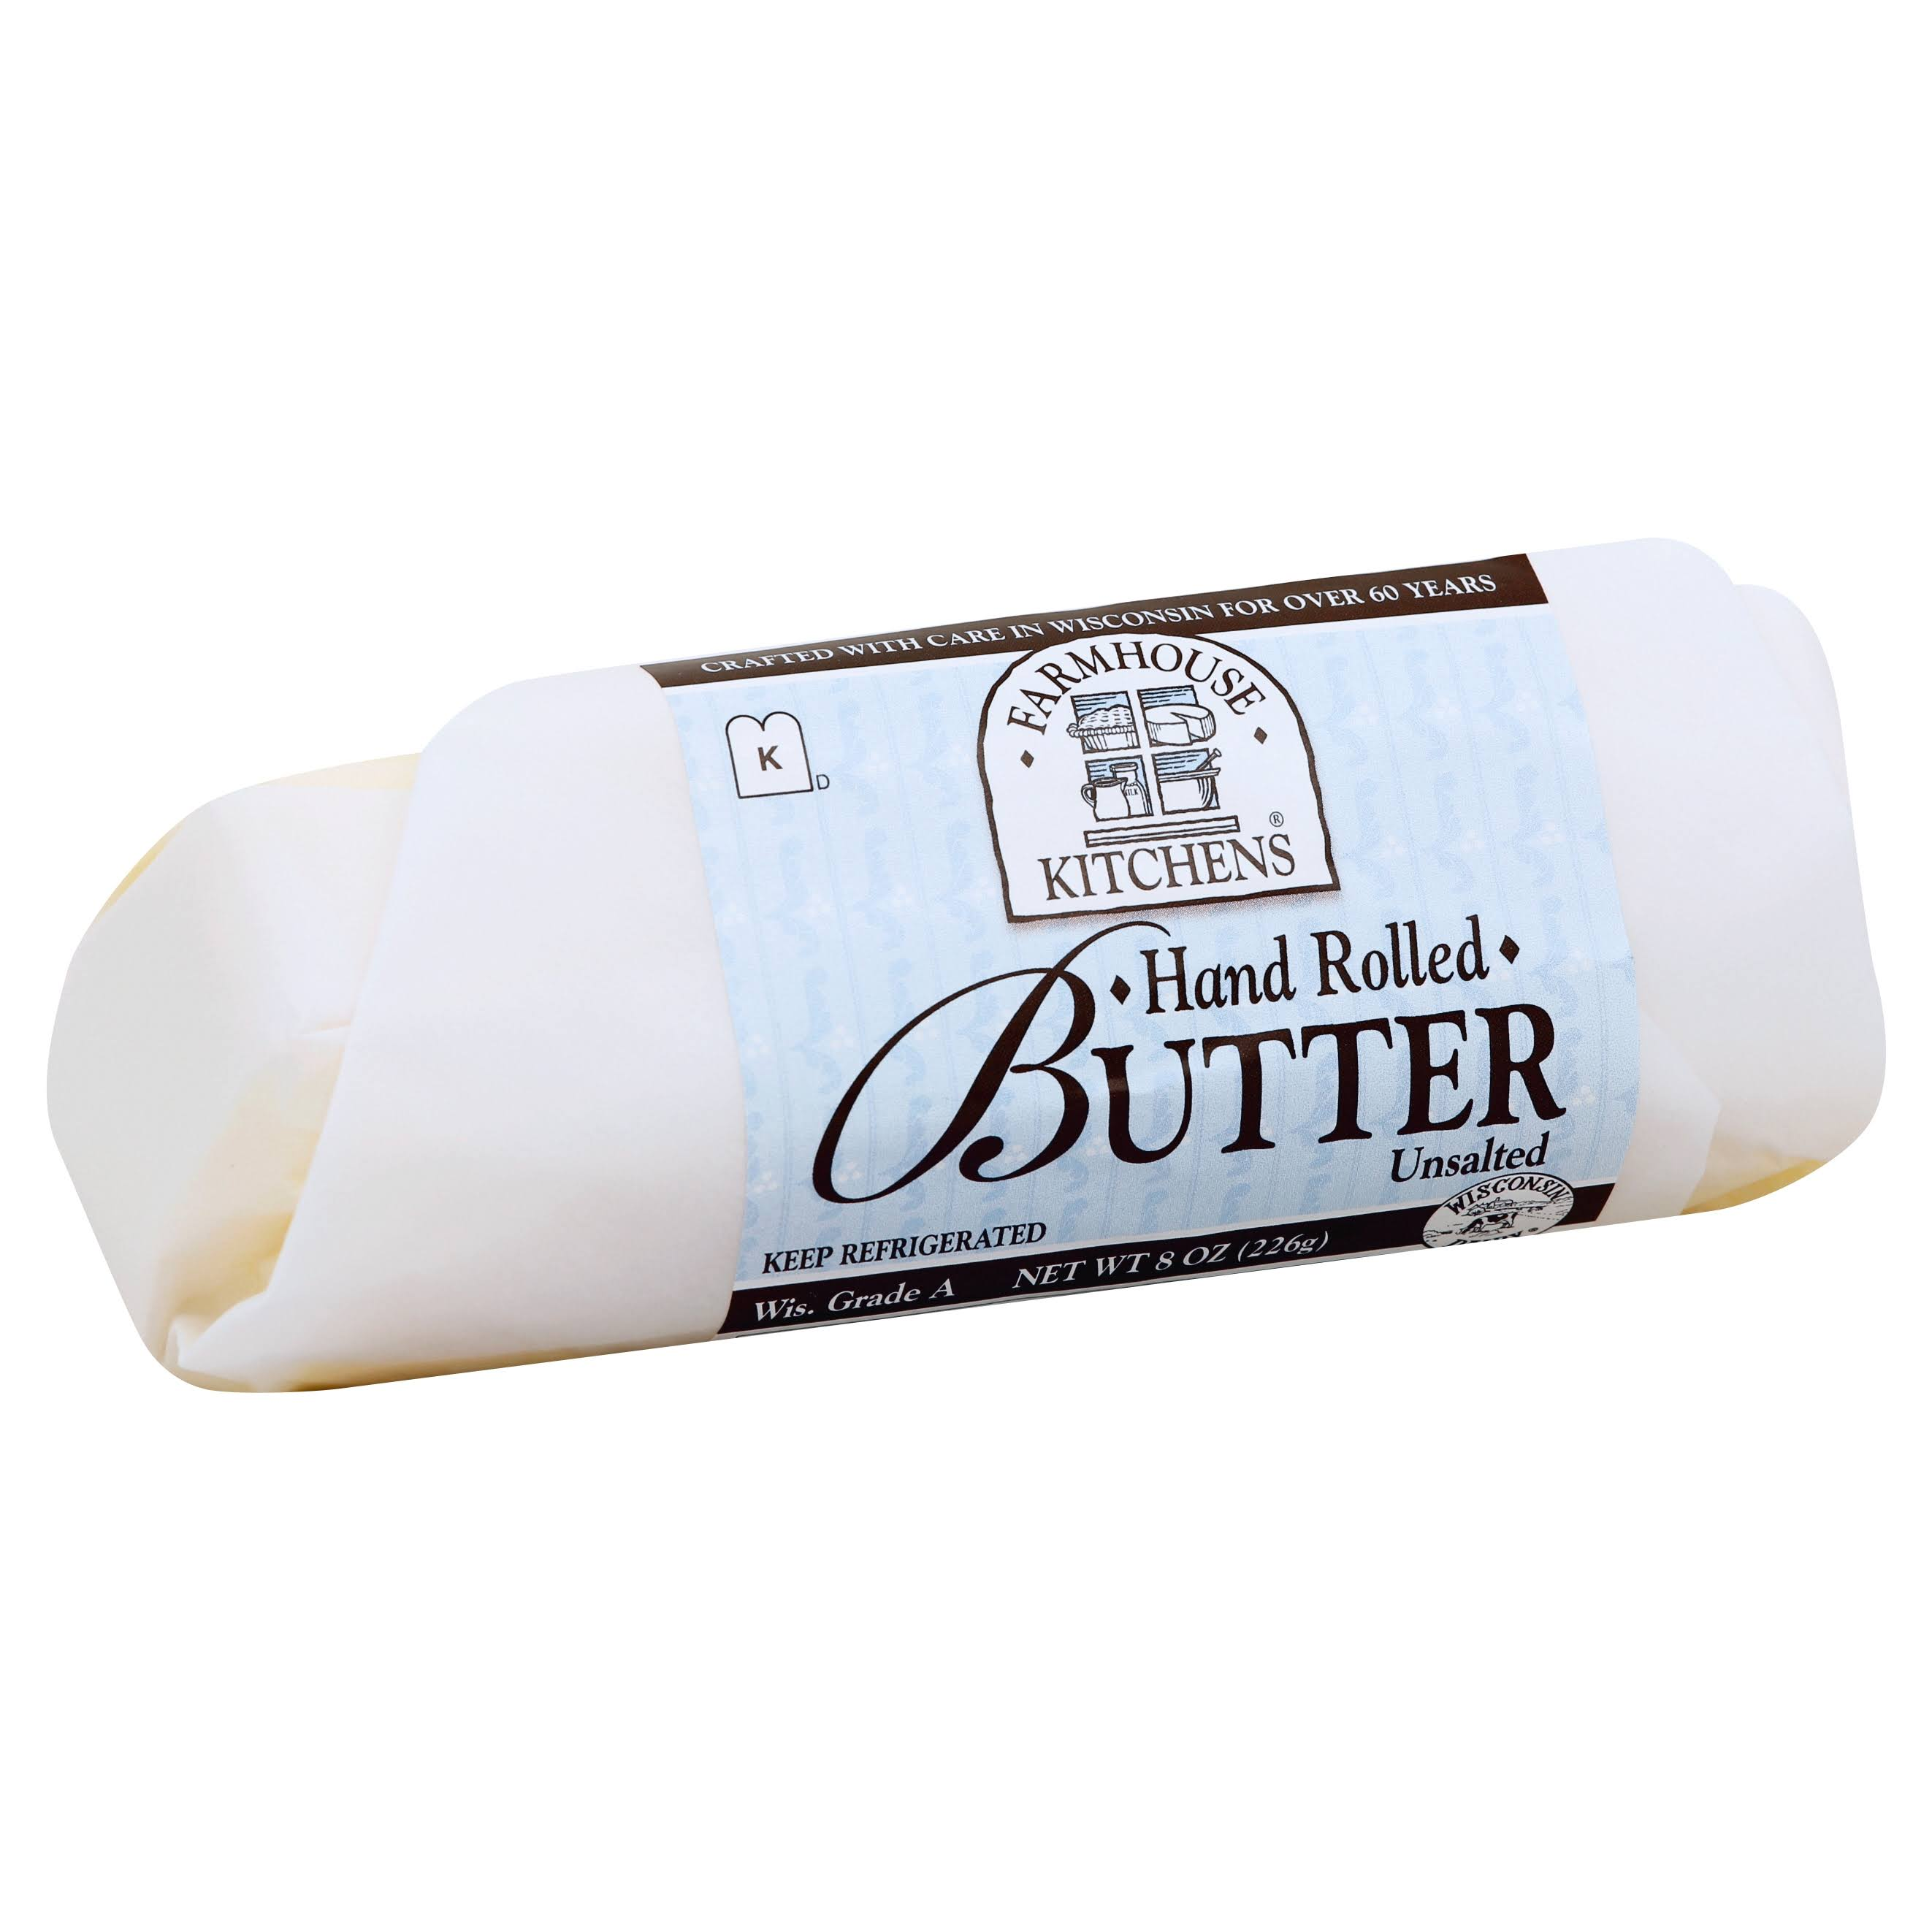 Farmhouse Kitchens Butter, Hand Rolled, Unsalted - 8 oz